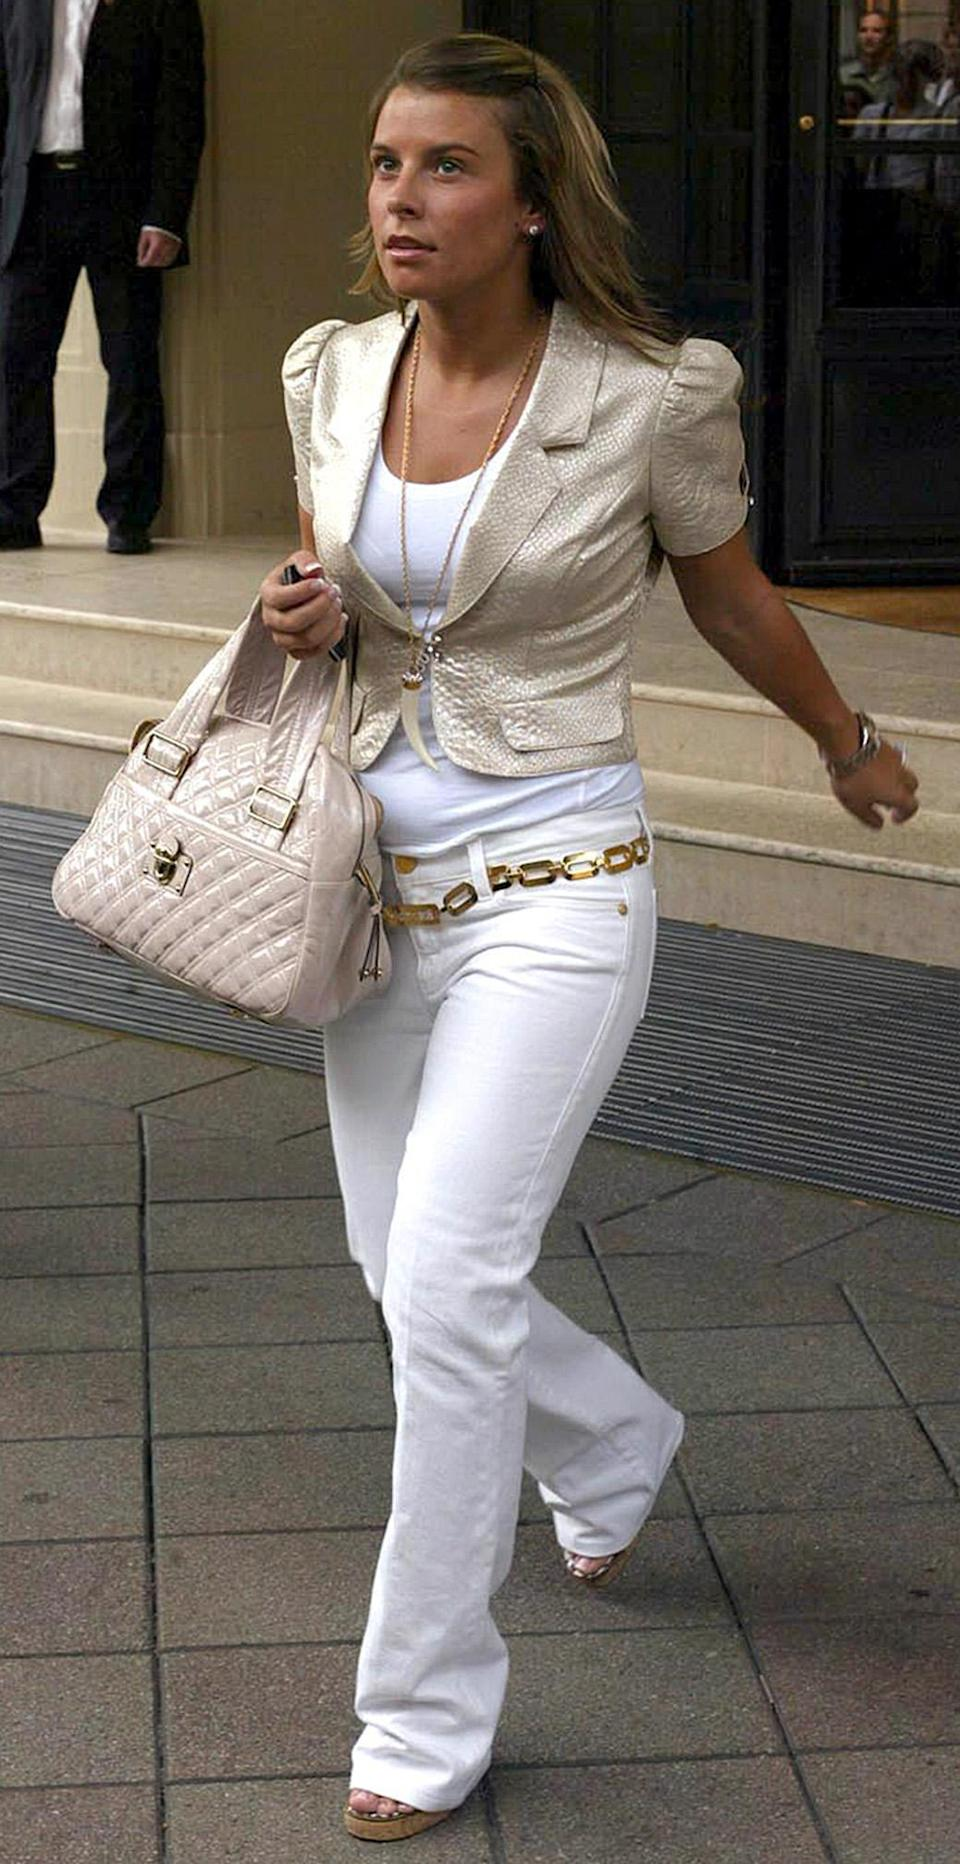 <p>Colleen McLoughlin (now known as Colleen Rooney) also joined the WAG line-up back in 2006 to show support for future husband, Wayne Rooney. And she was a girl after our own noughties heart, as she packed a plethora of white jeans and layered necklaces for the Germany trip. <em>[Photo: Rex]</em> </p>